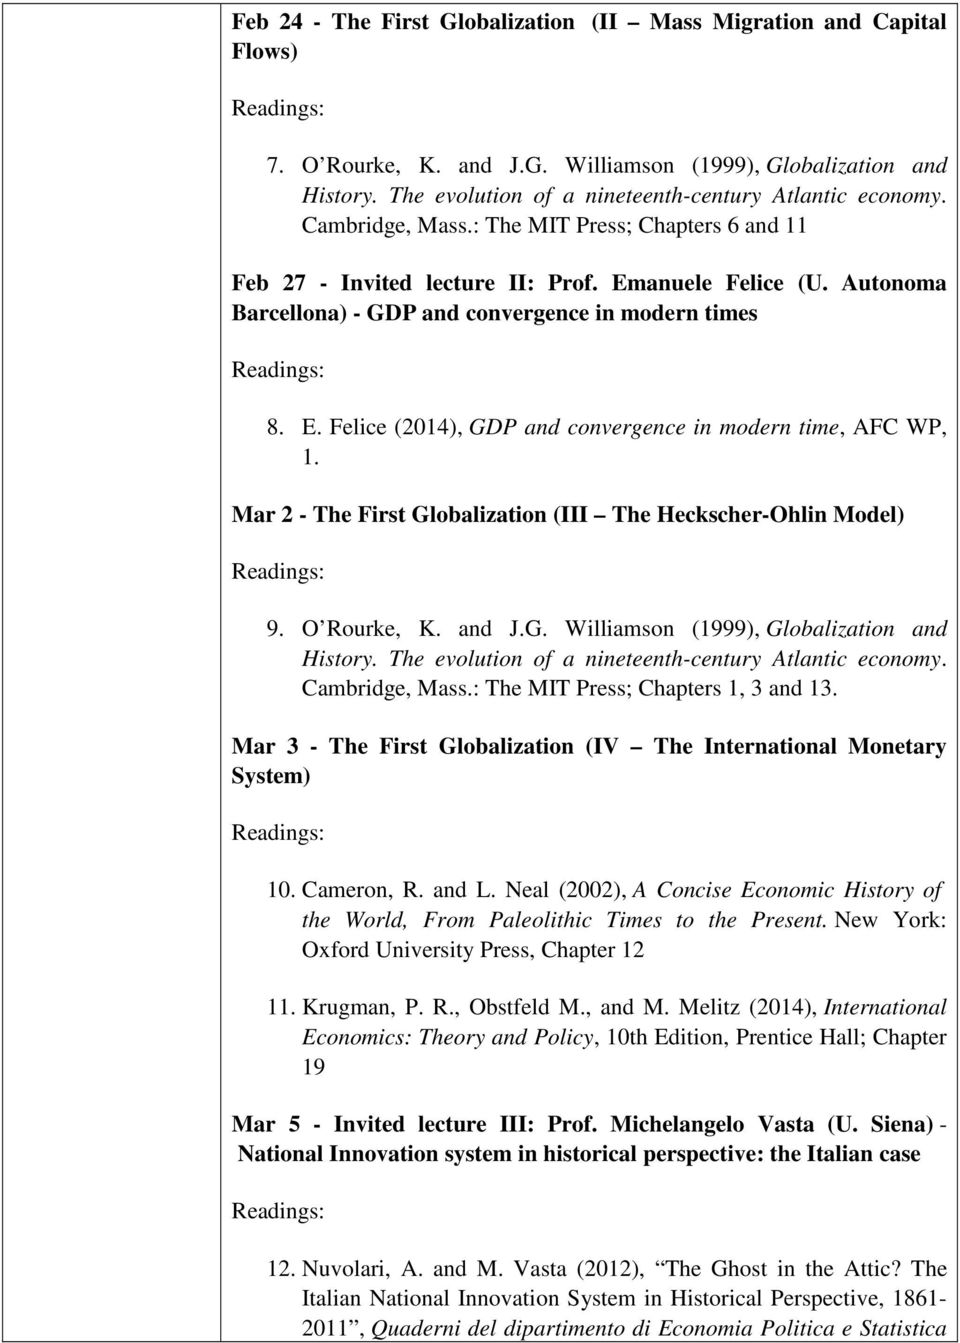 Mar 2 - The First Globalization (III The Heckscher-Ohlin Model) 9. O Rourke, K. and J.G. Williamson (1999), Globalization and Cambridge, Mass.: The MIT Press; Chapters 1, 3 and 13.